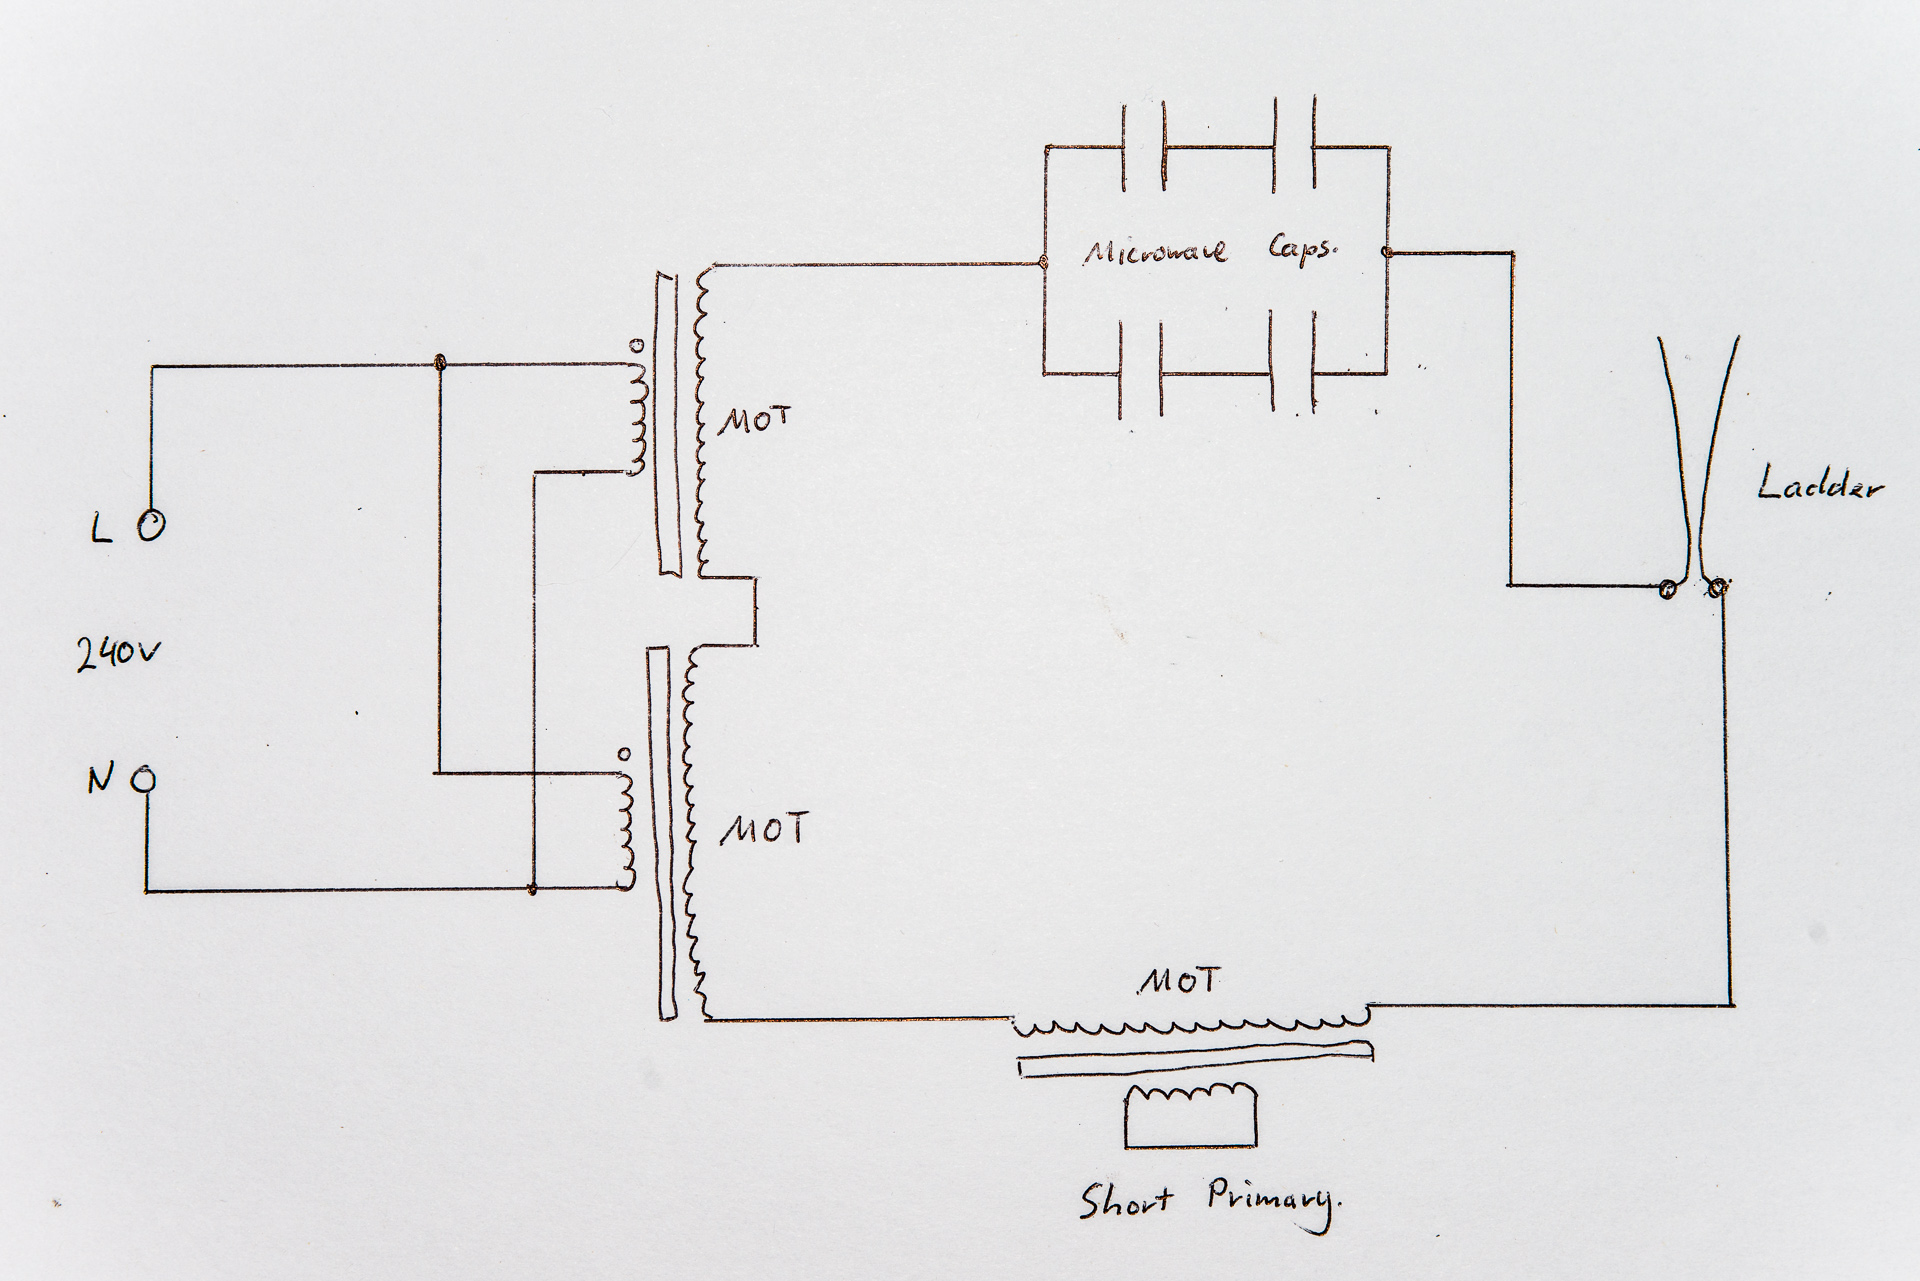 Jacobs Electronics Wiring Diagram from static-resources.imageservice.cloud